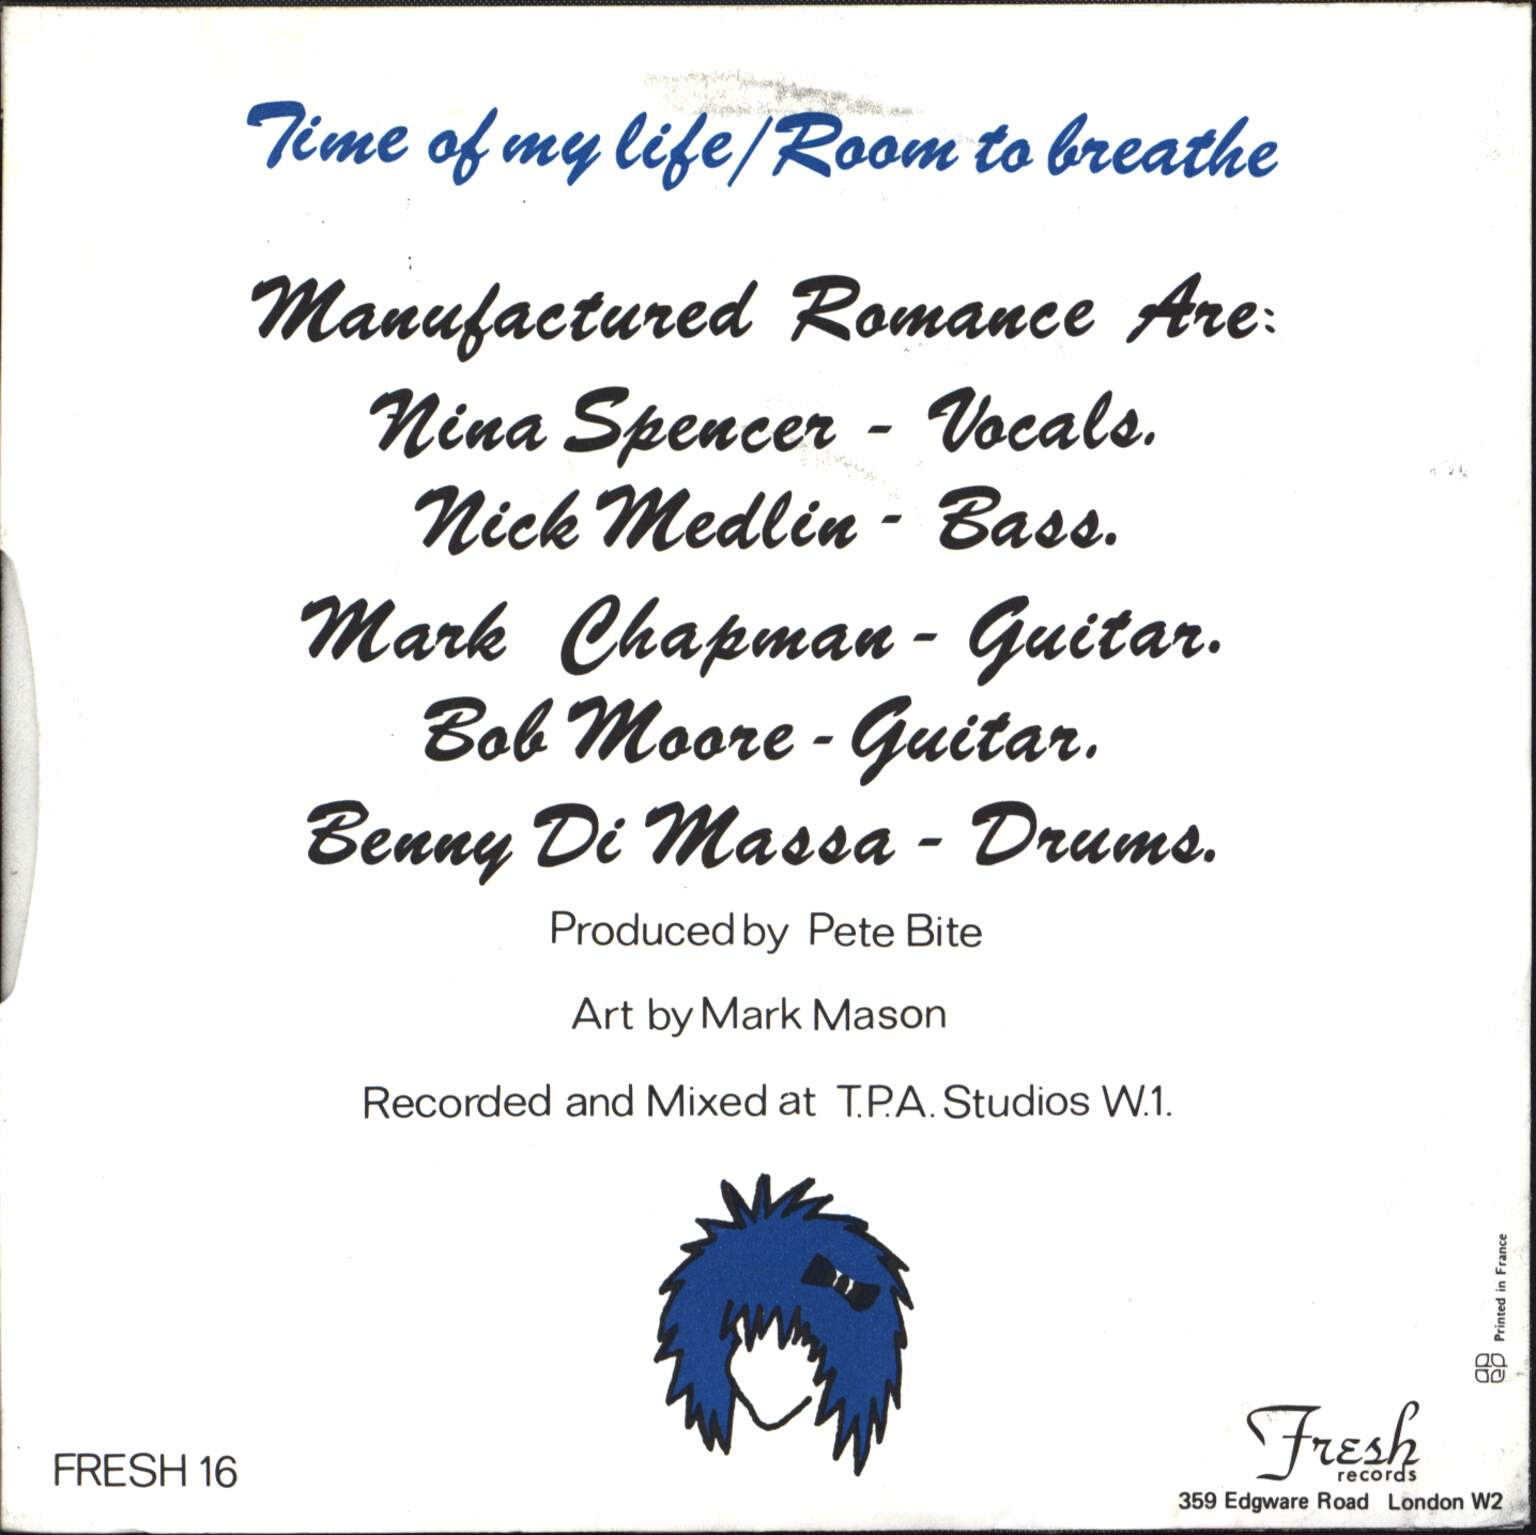 "Manufactured Romance: The Time Of My Life / Room To Breathe, 7"" Single (Vinyl)"